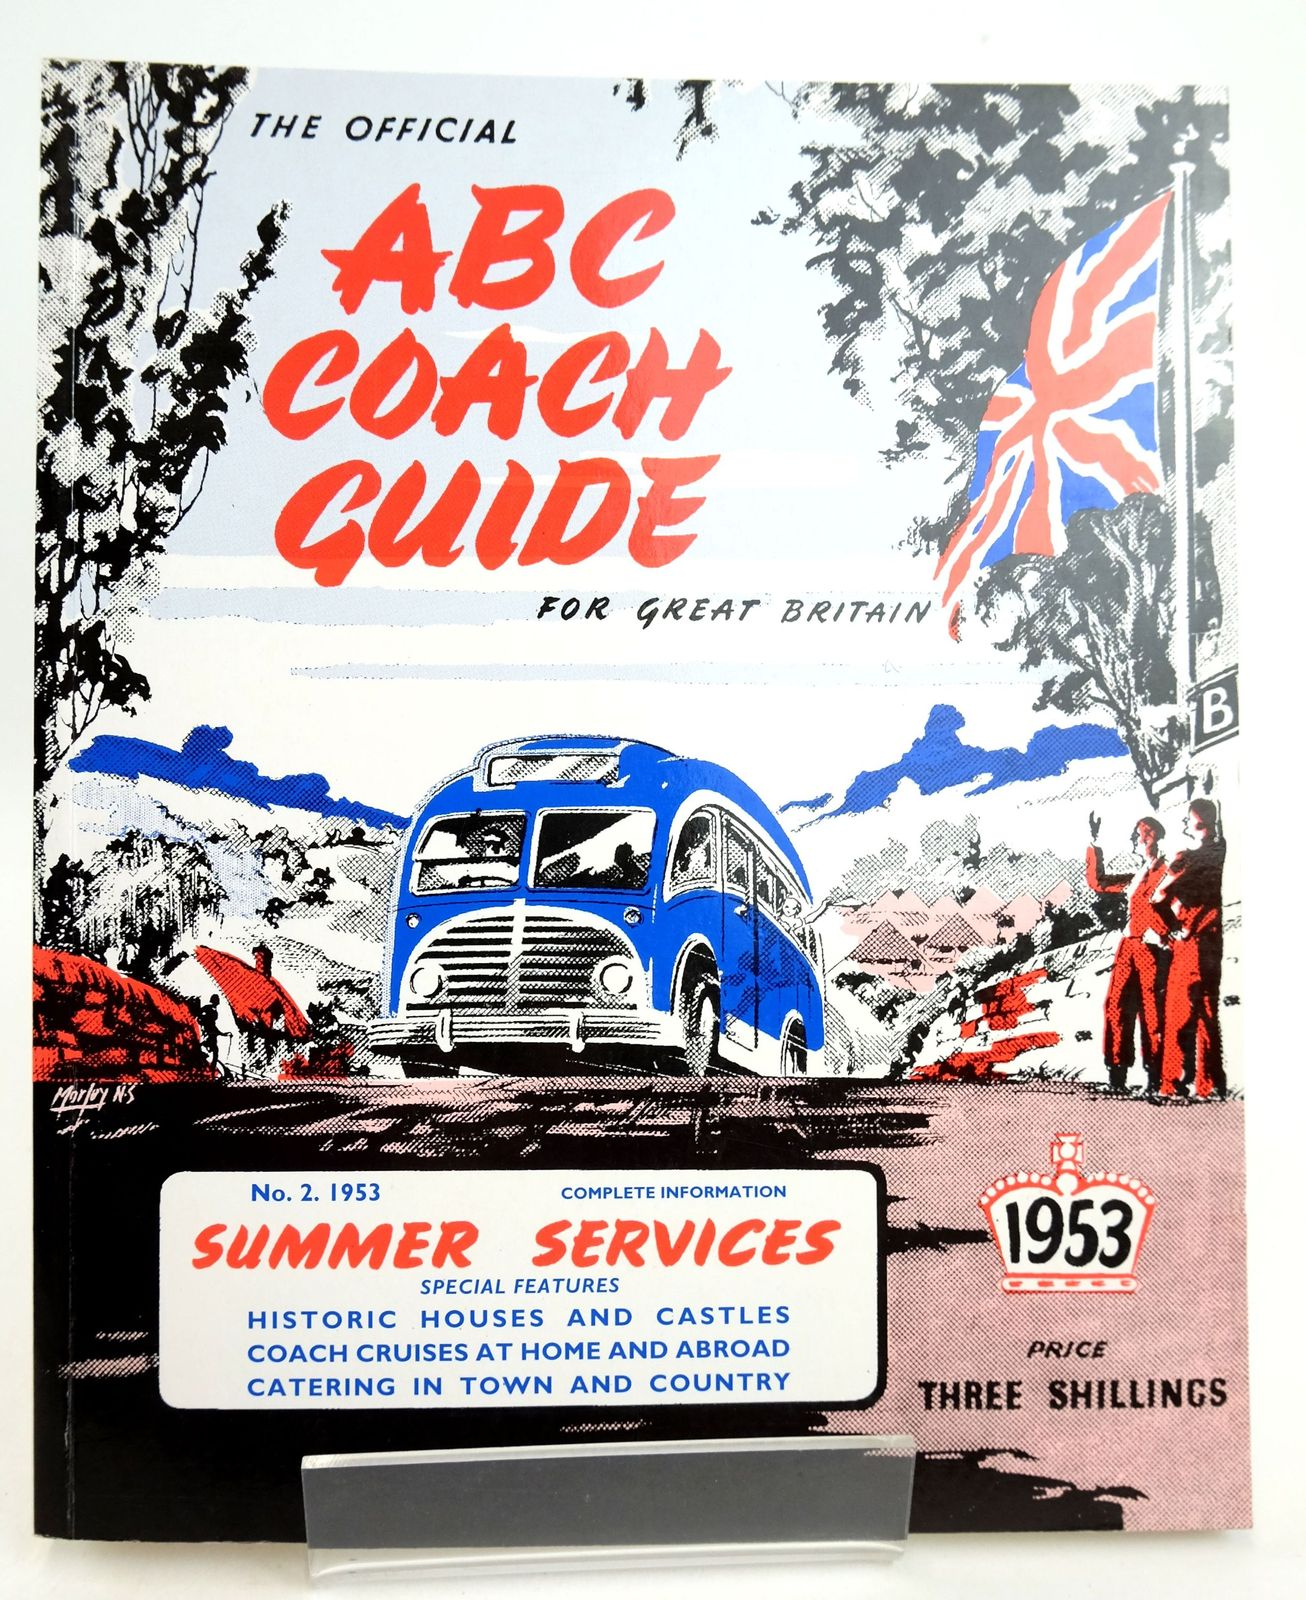 Photo of THE OFFICIAL ABC COACH GUIDE FOR GREAT BRITAIN No. 2, 1953 SUMMER SERVICES published by Tempest Associates Limited (STOCK CODE: 1819334)  for sale by Stella & Rose's Books